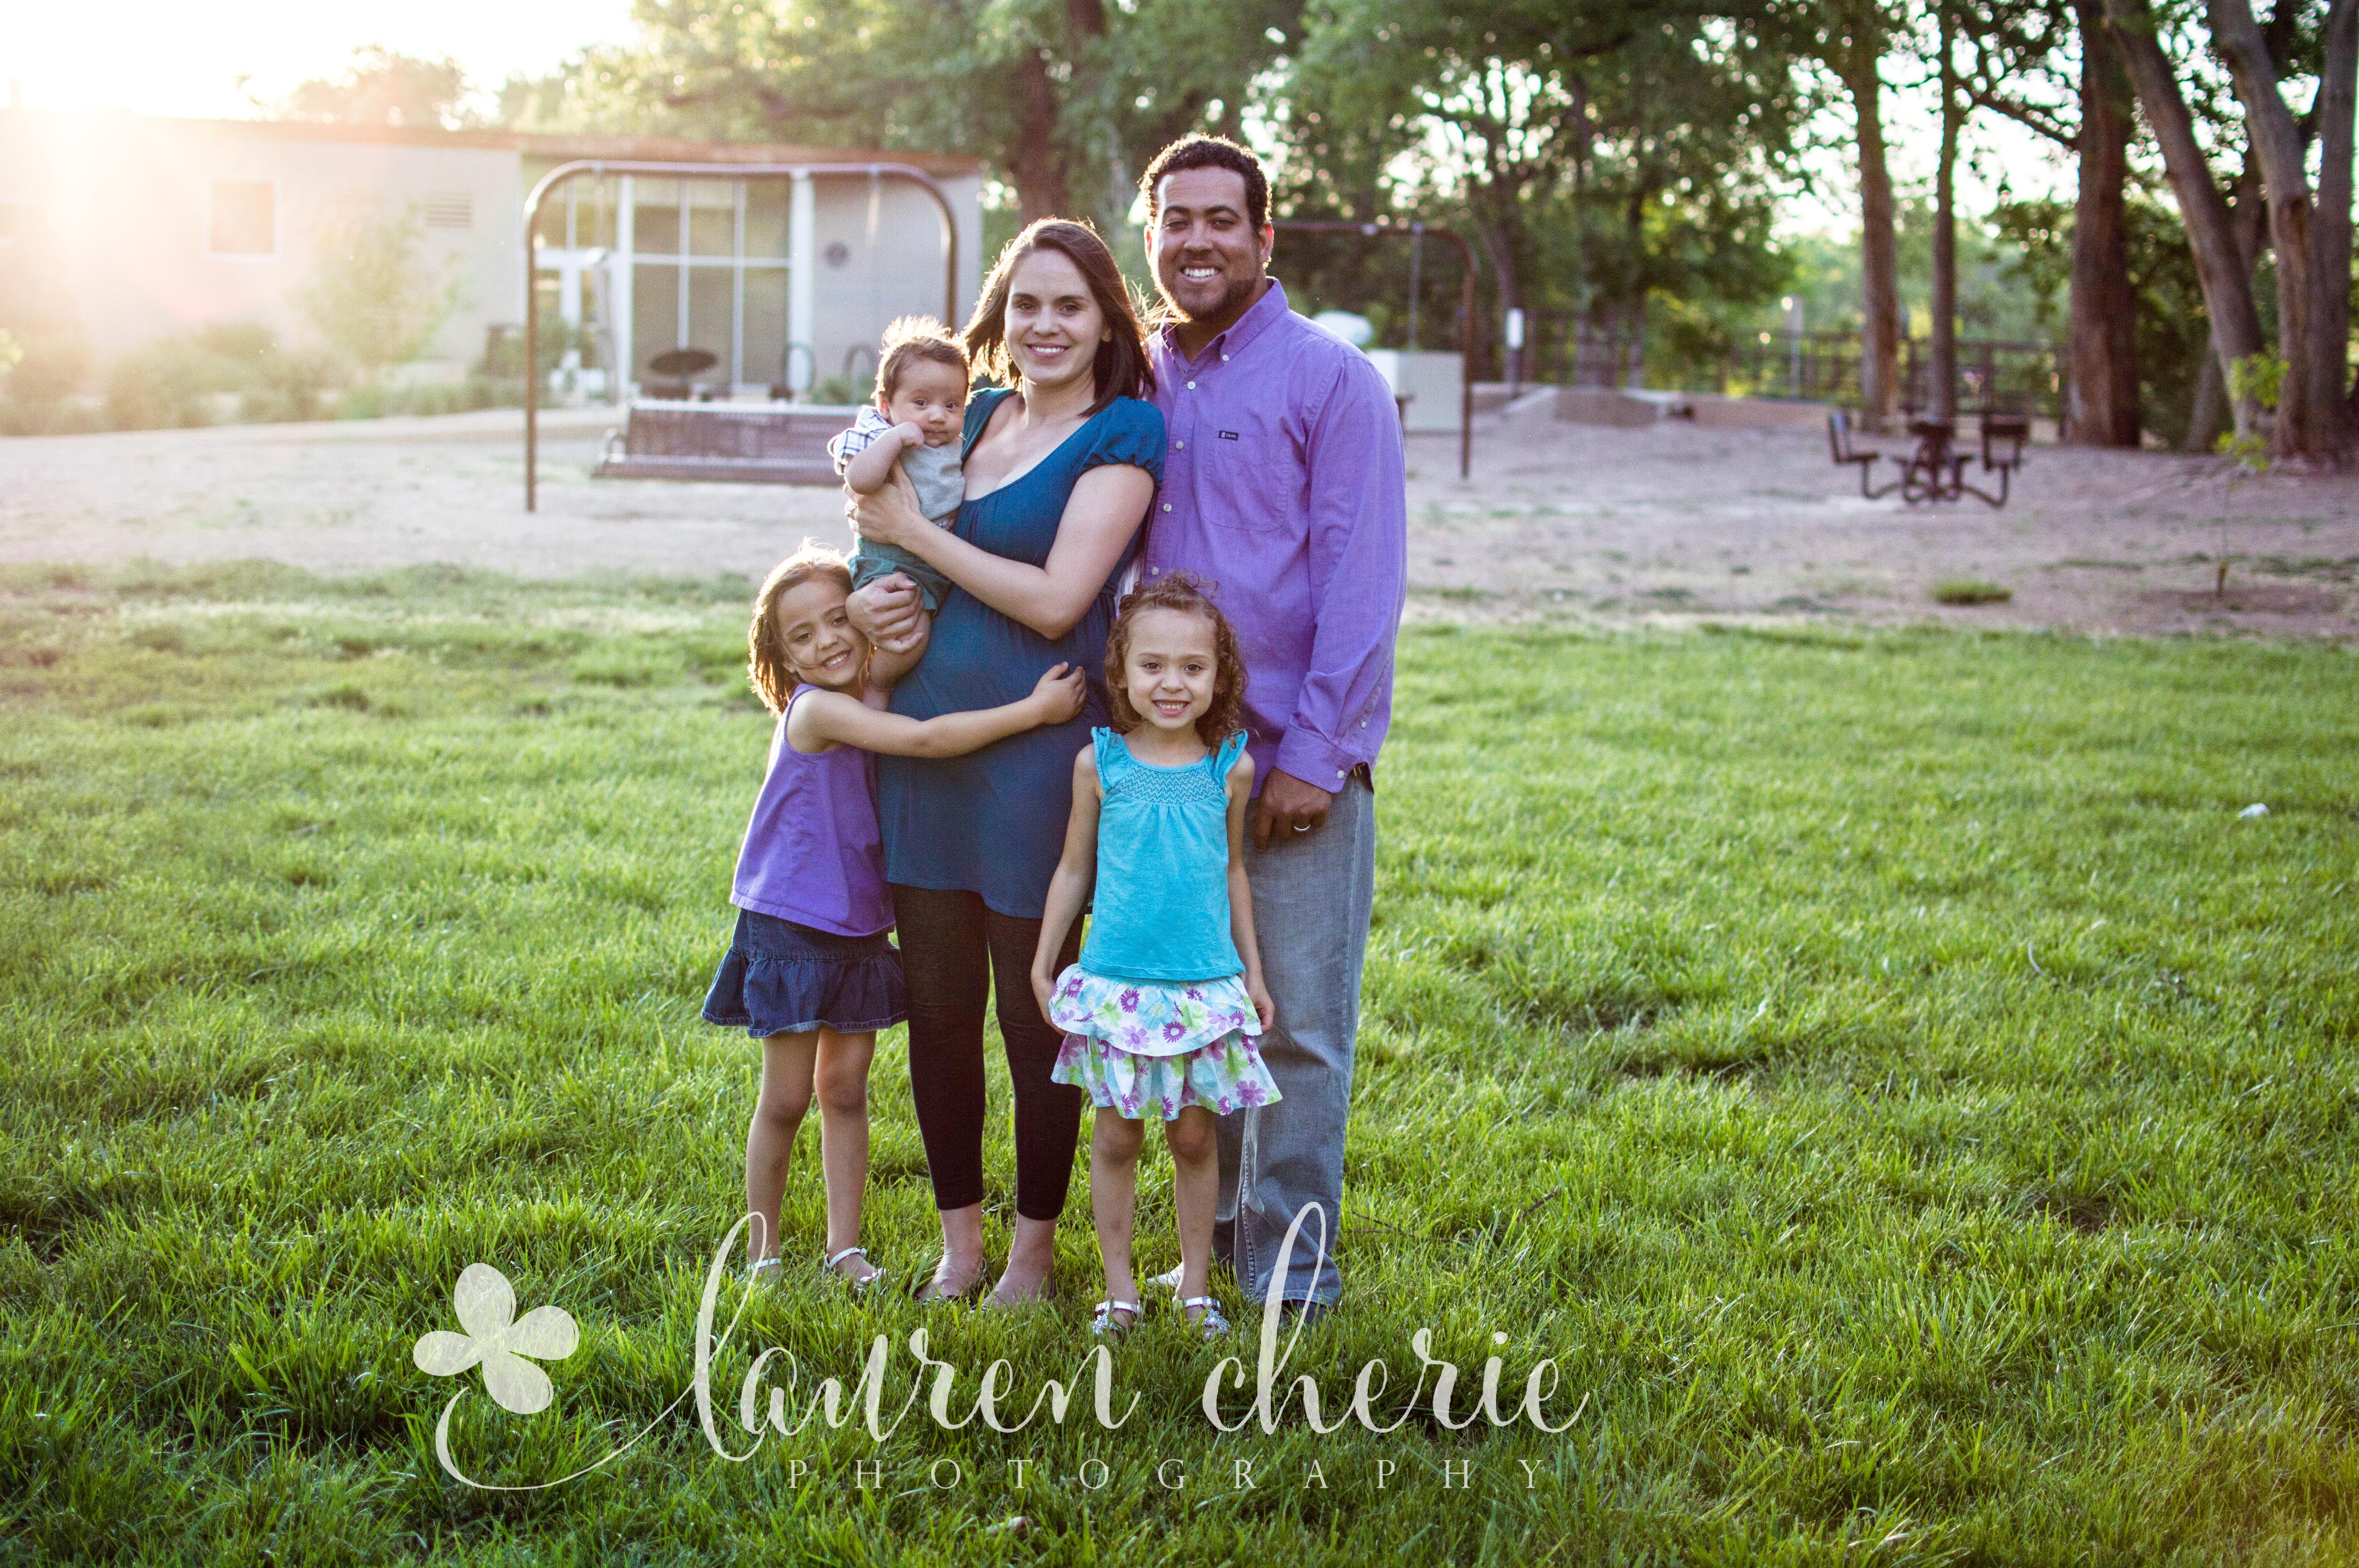 Lauren Cherie Photography | Family photography | Outdoor family ...